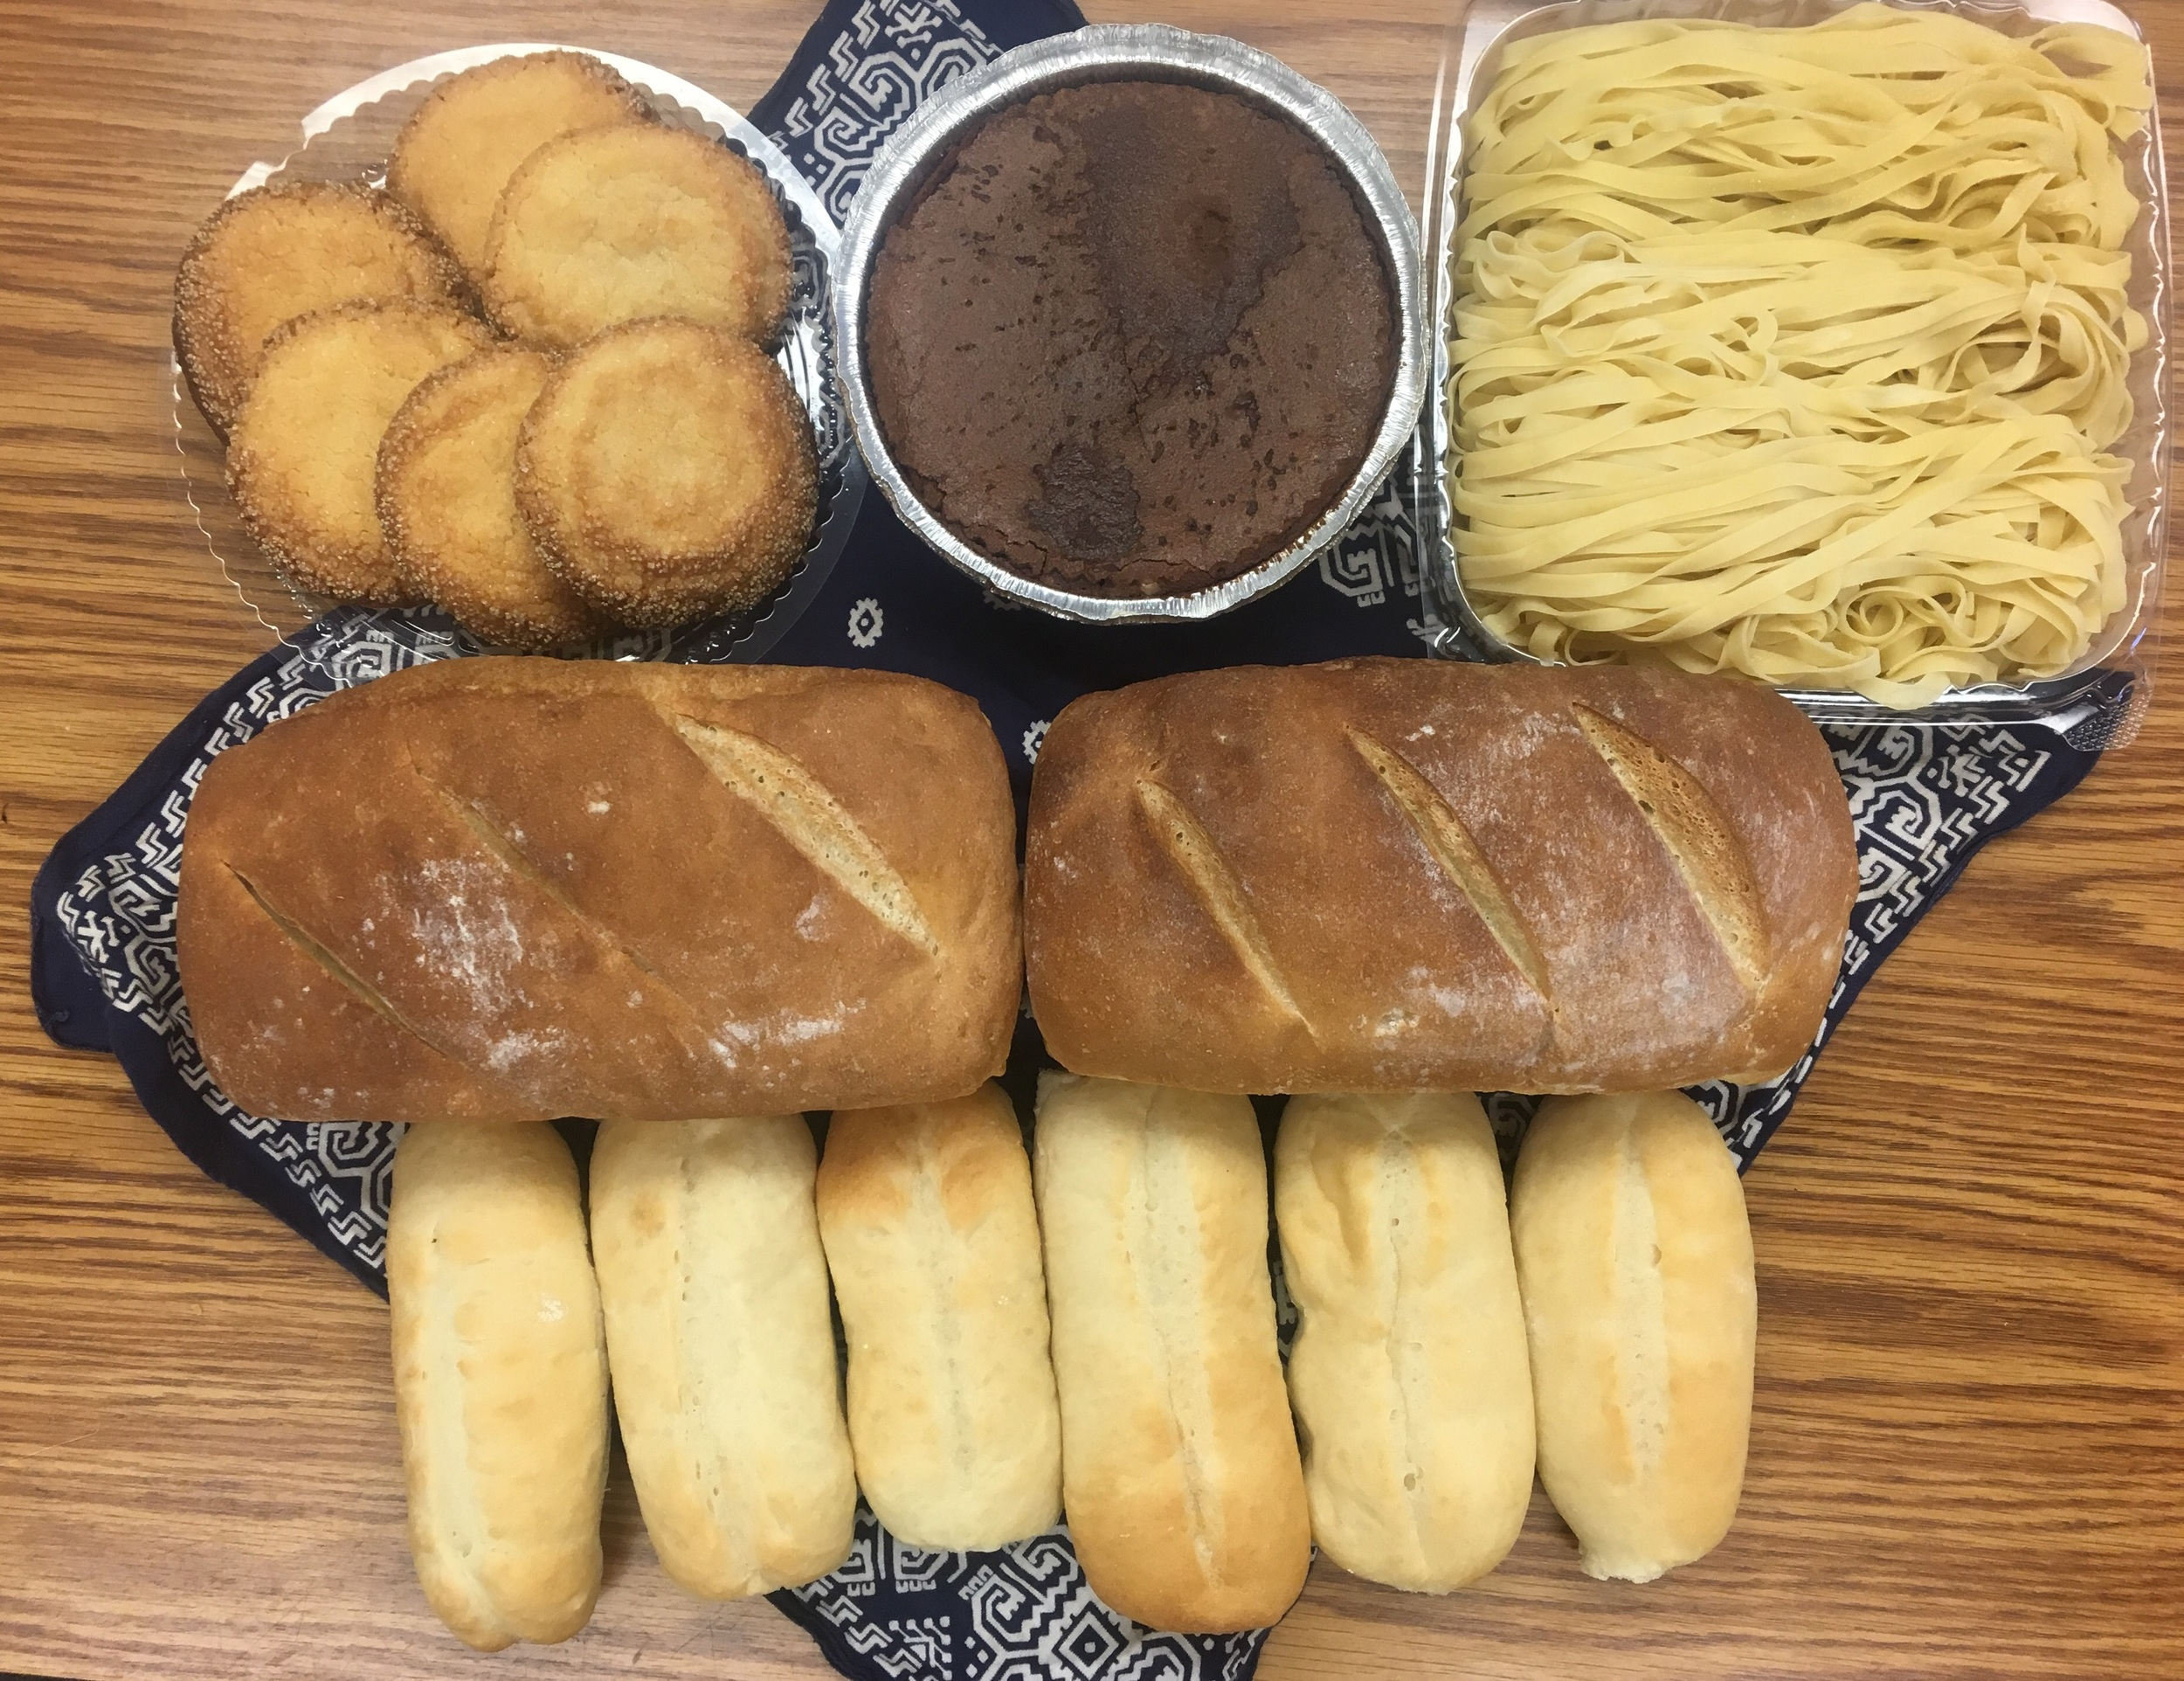 Bread share: Large